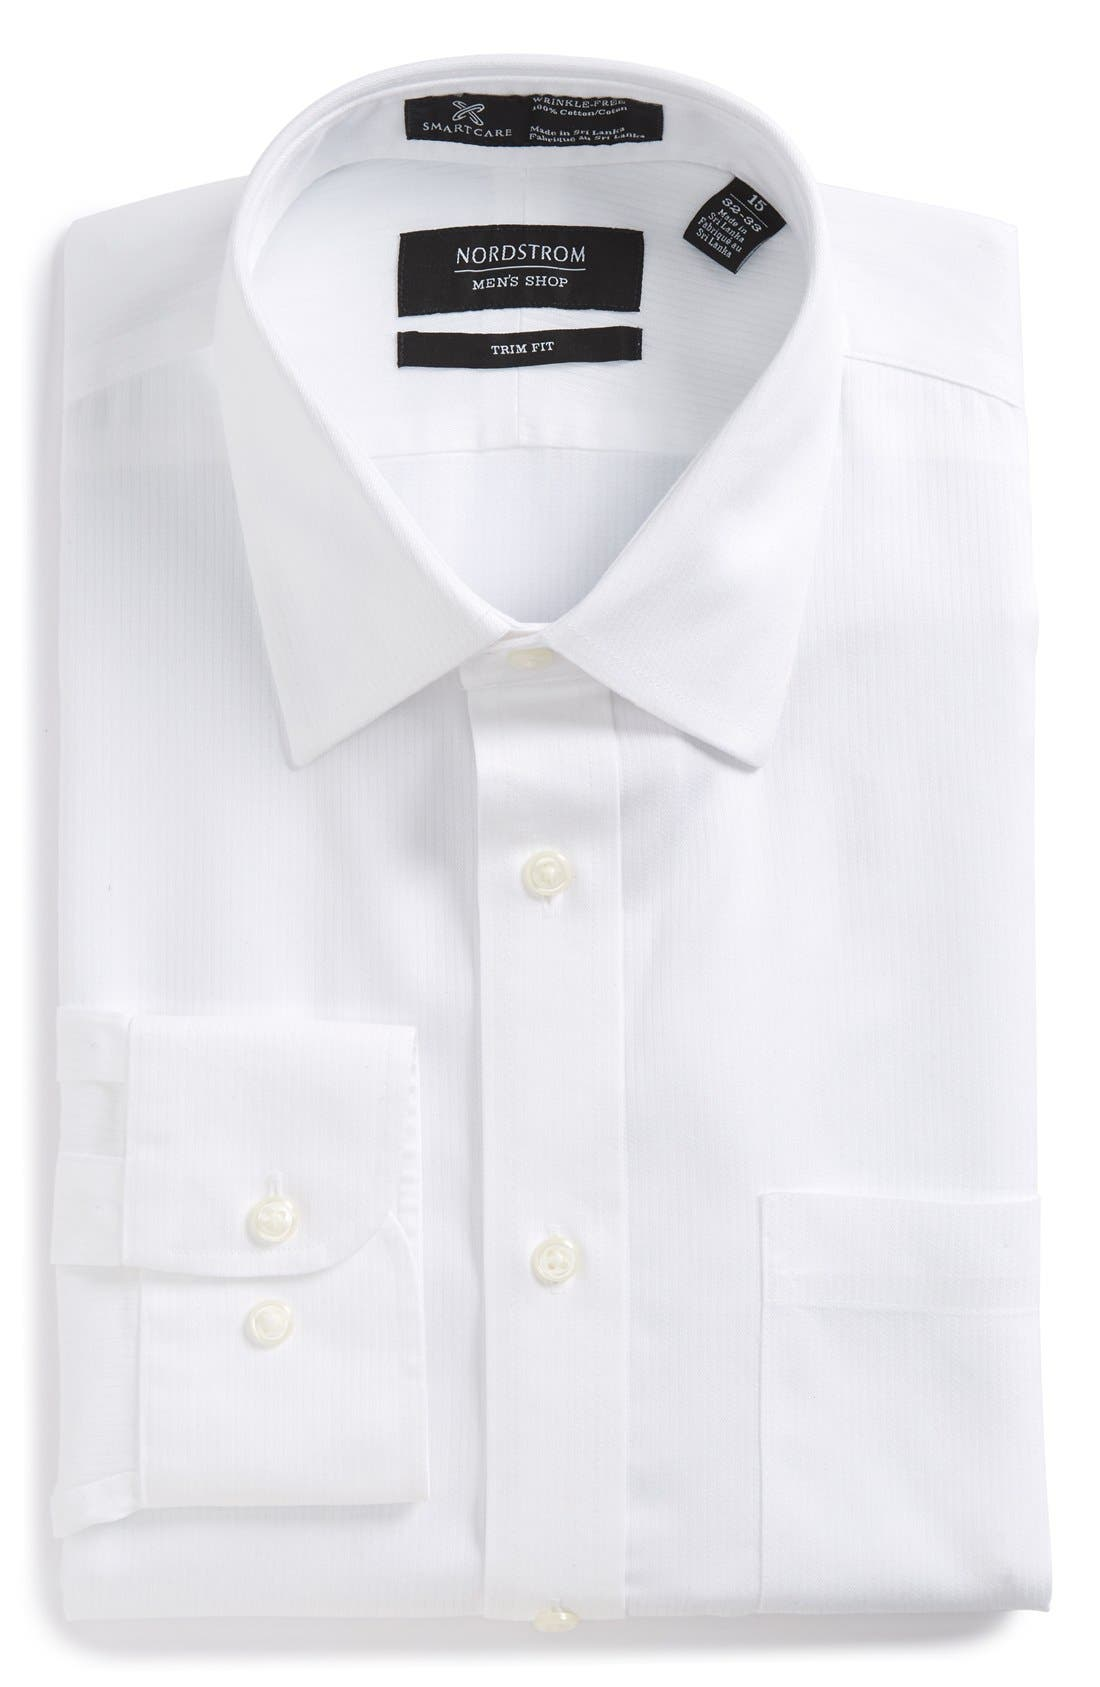 Nordstrom Men's Shop Smartcare™ Trim Fit Dress Shirt